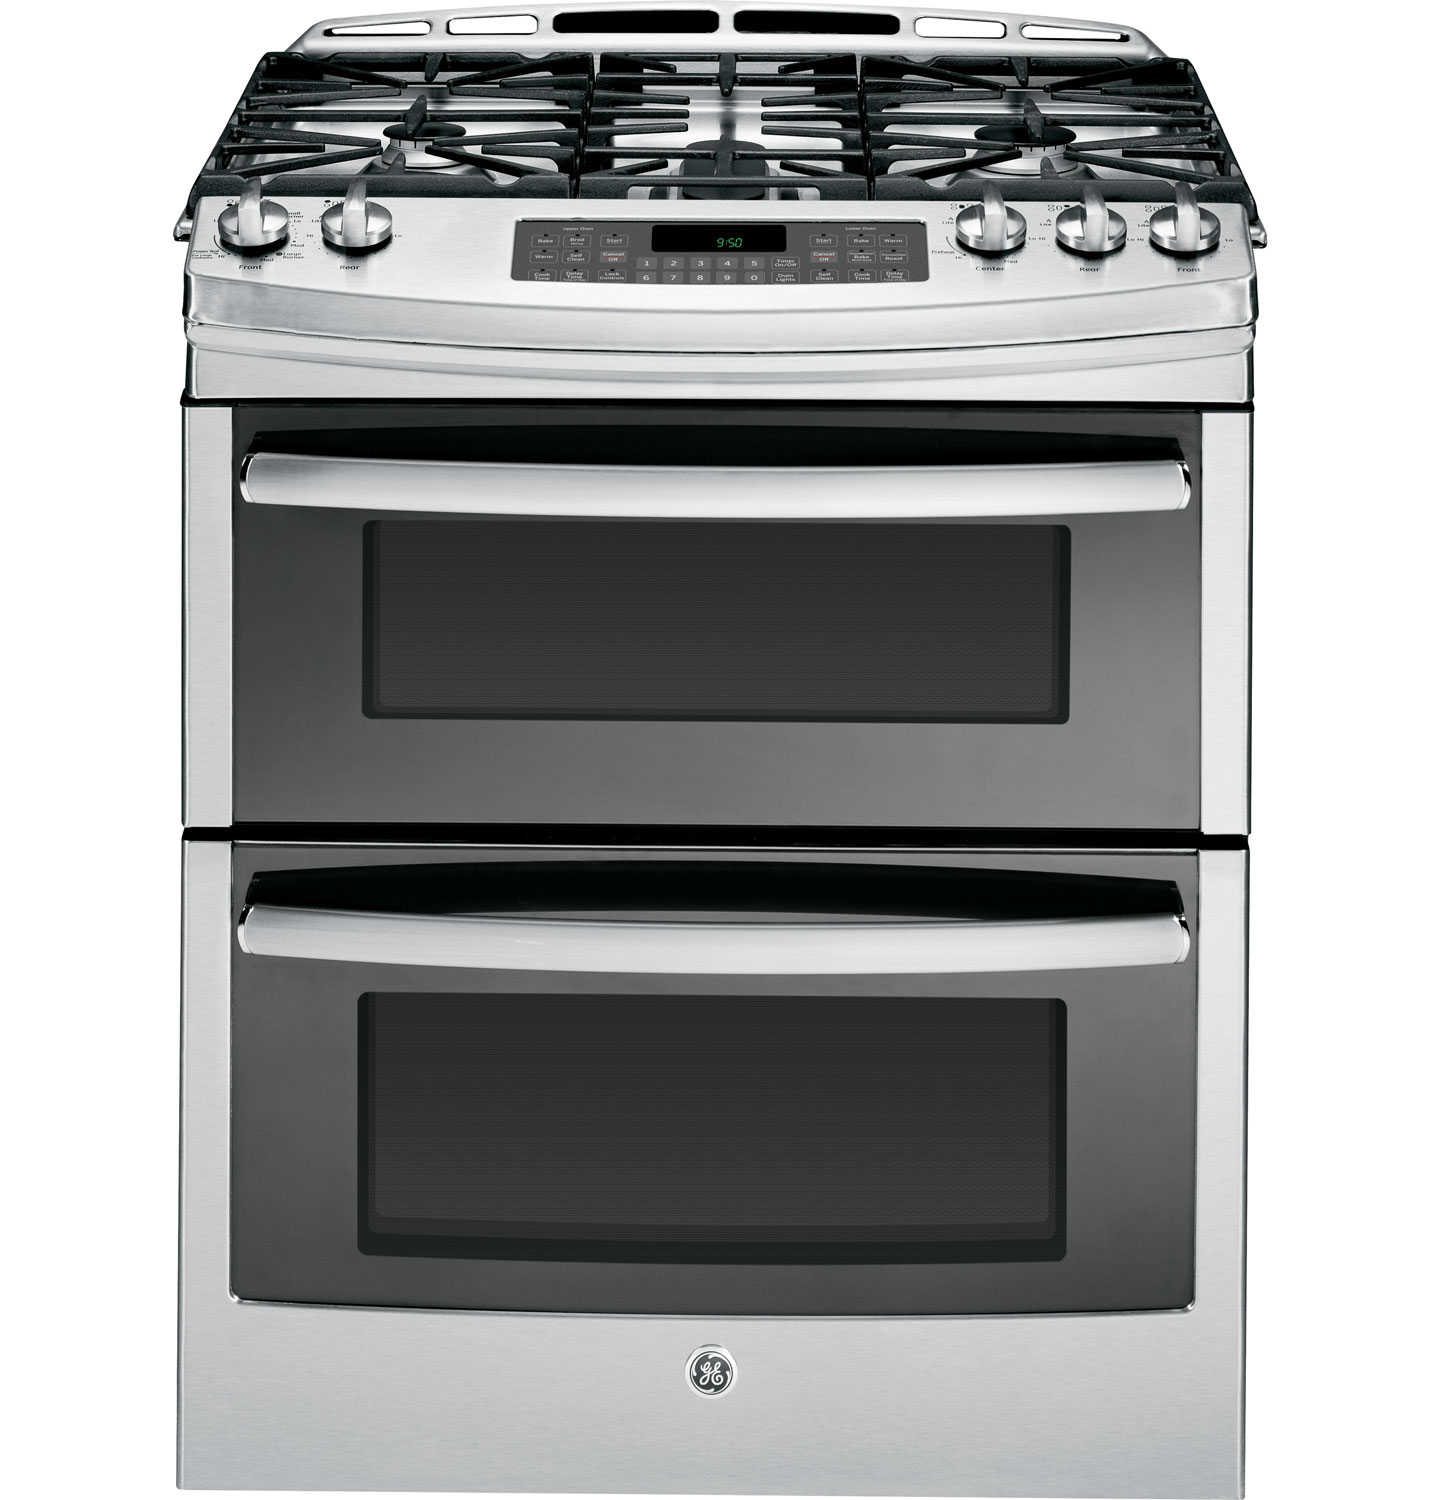 GE Profile 30 Slide-In Gas Range - Stainless Steel